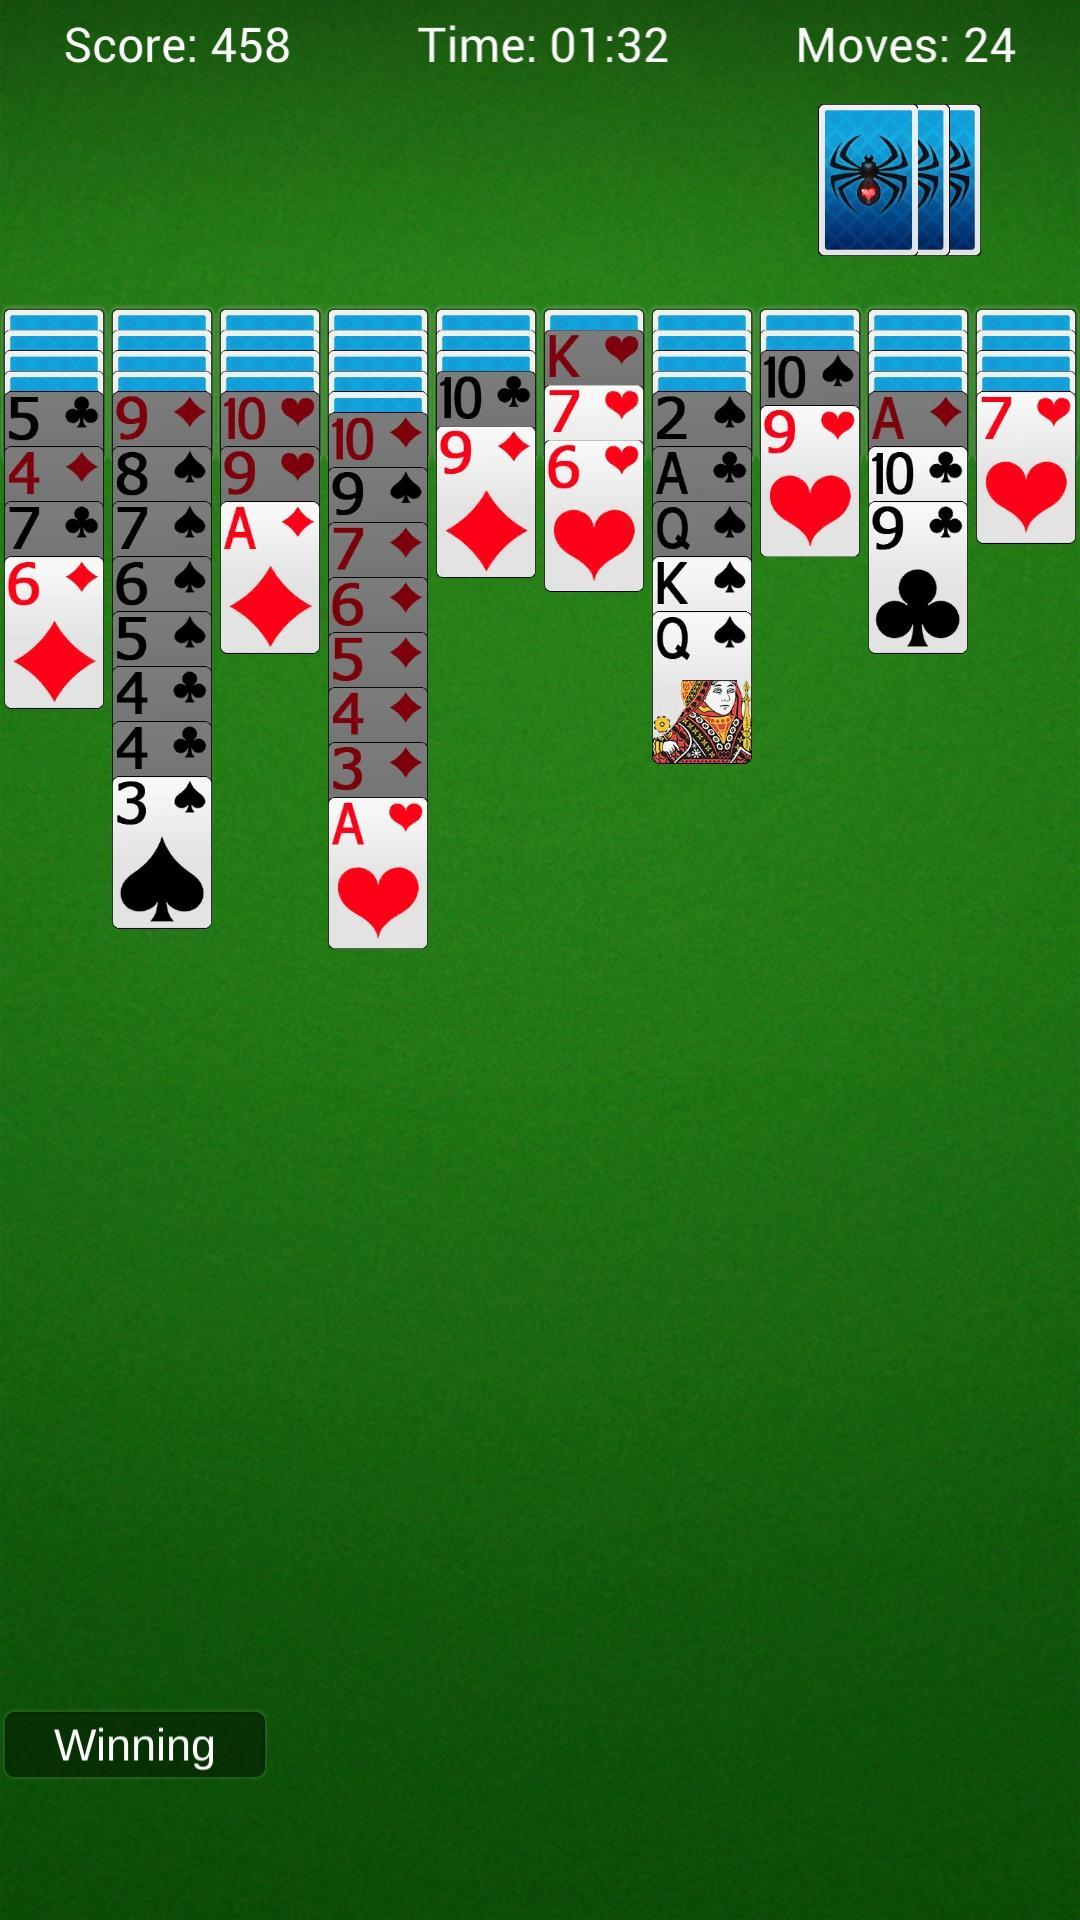 Spider Solitaire - Best Classic Card Games 1.8.0.20210225 Screenshot 13